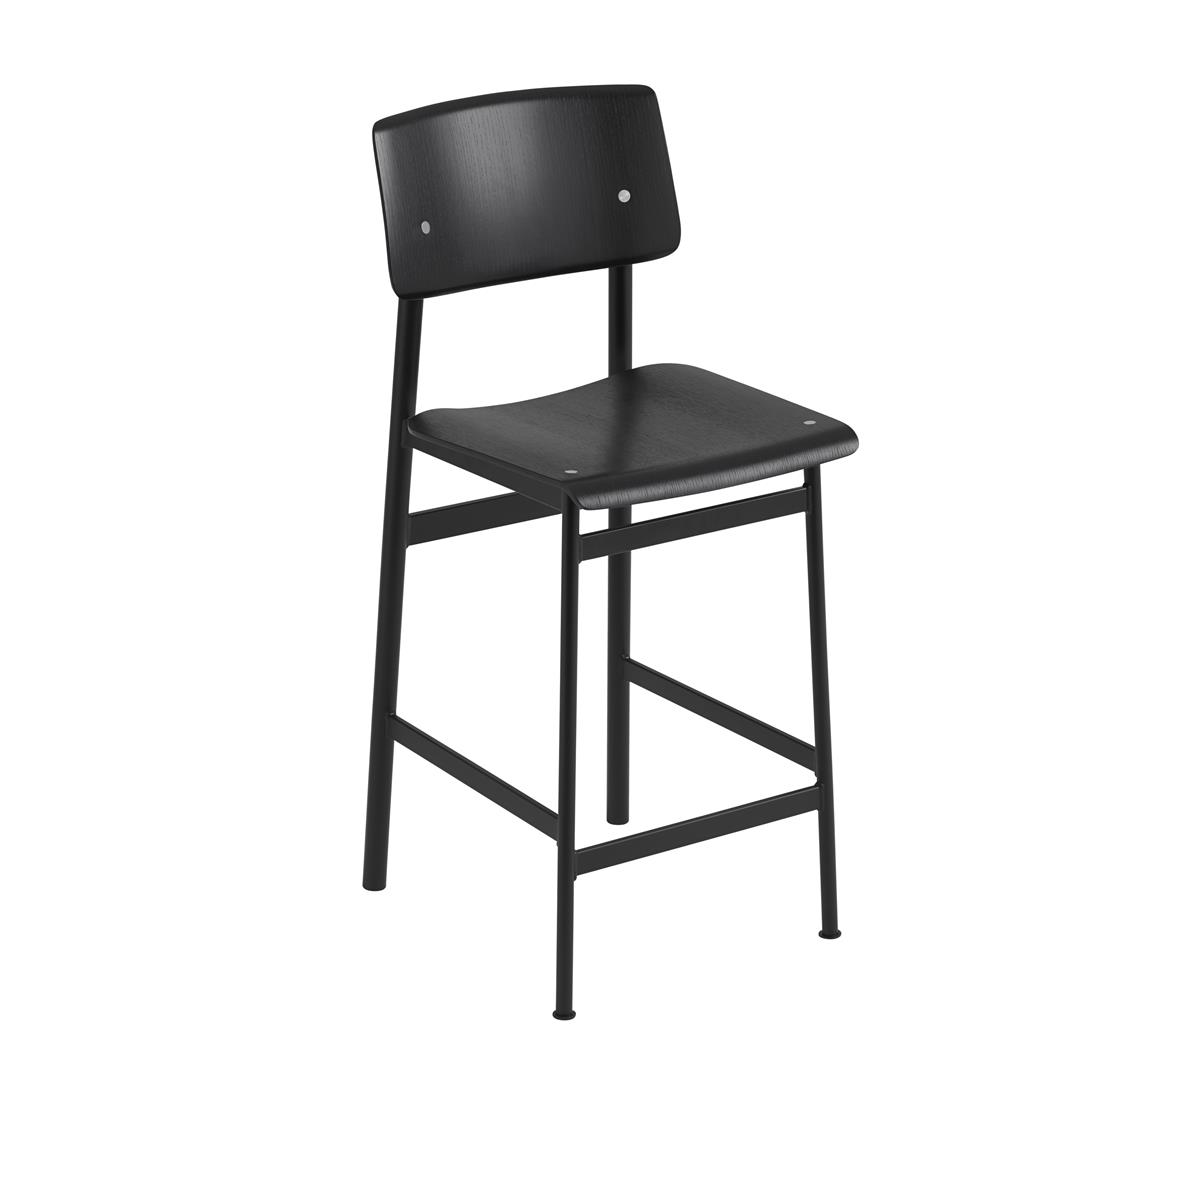 Loft Bar Stool H65 - Black